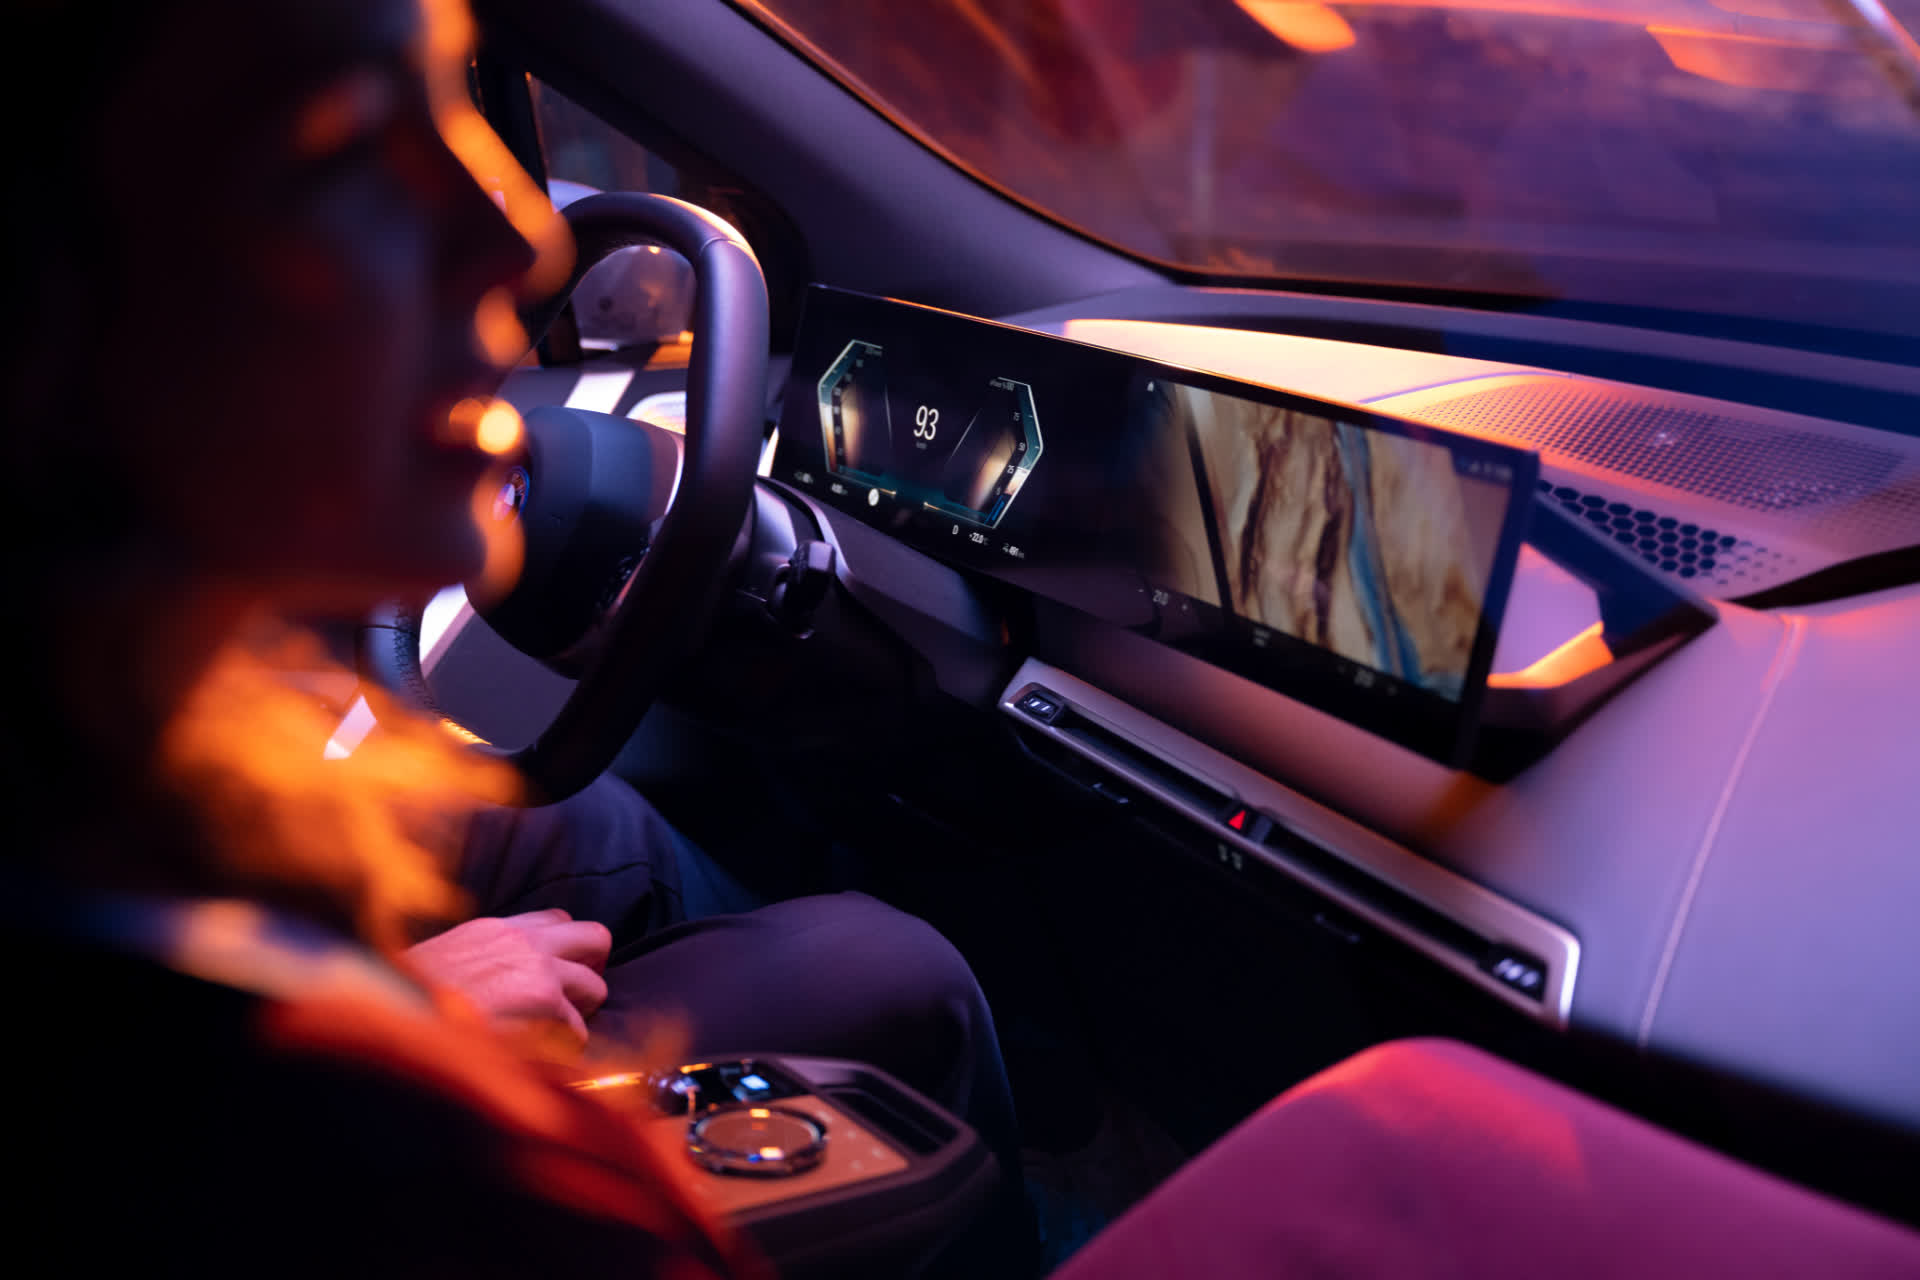 BMW's all-new iDrive infotainment system features curved screens, will debut in upcoming EVs